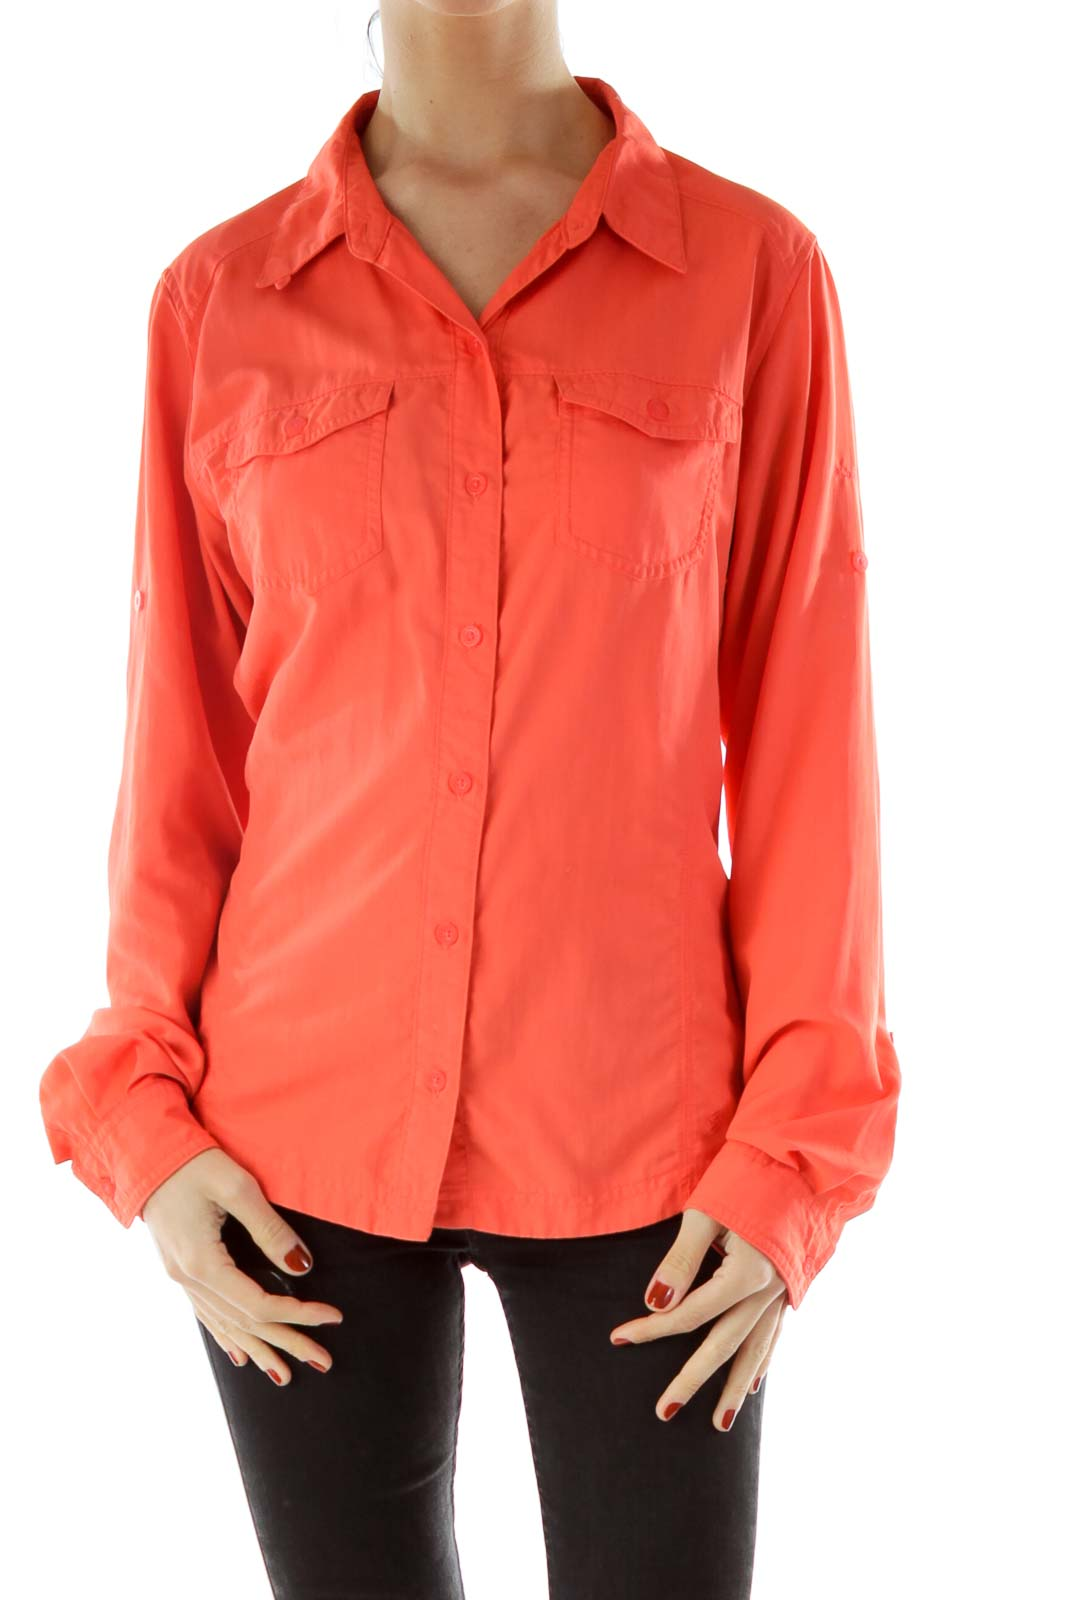 Orange Collared Shirt